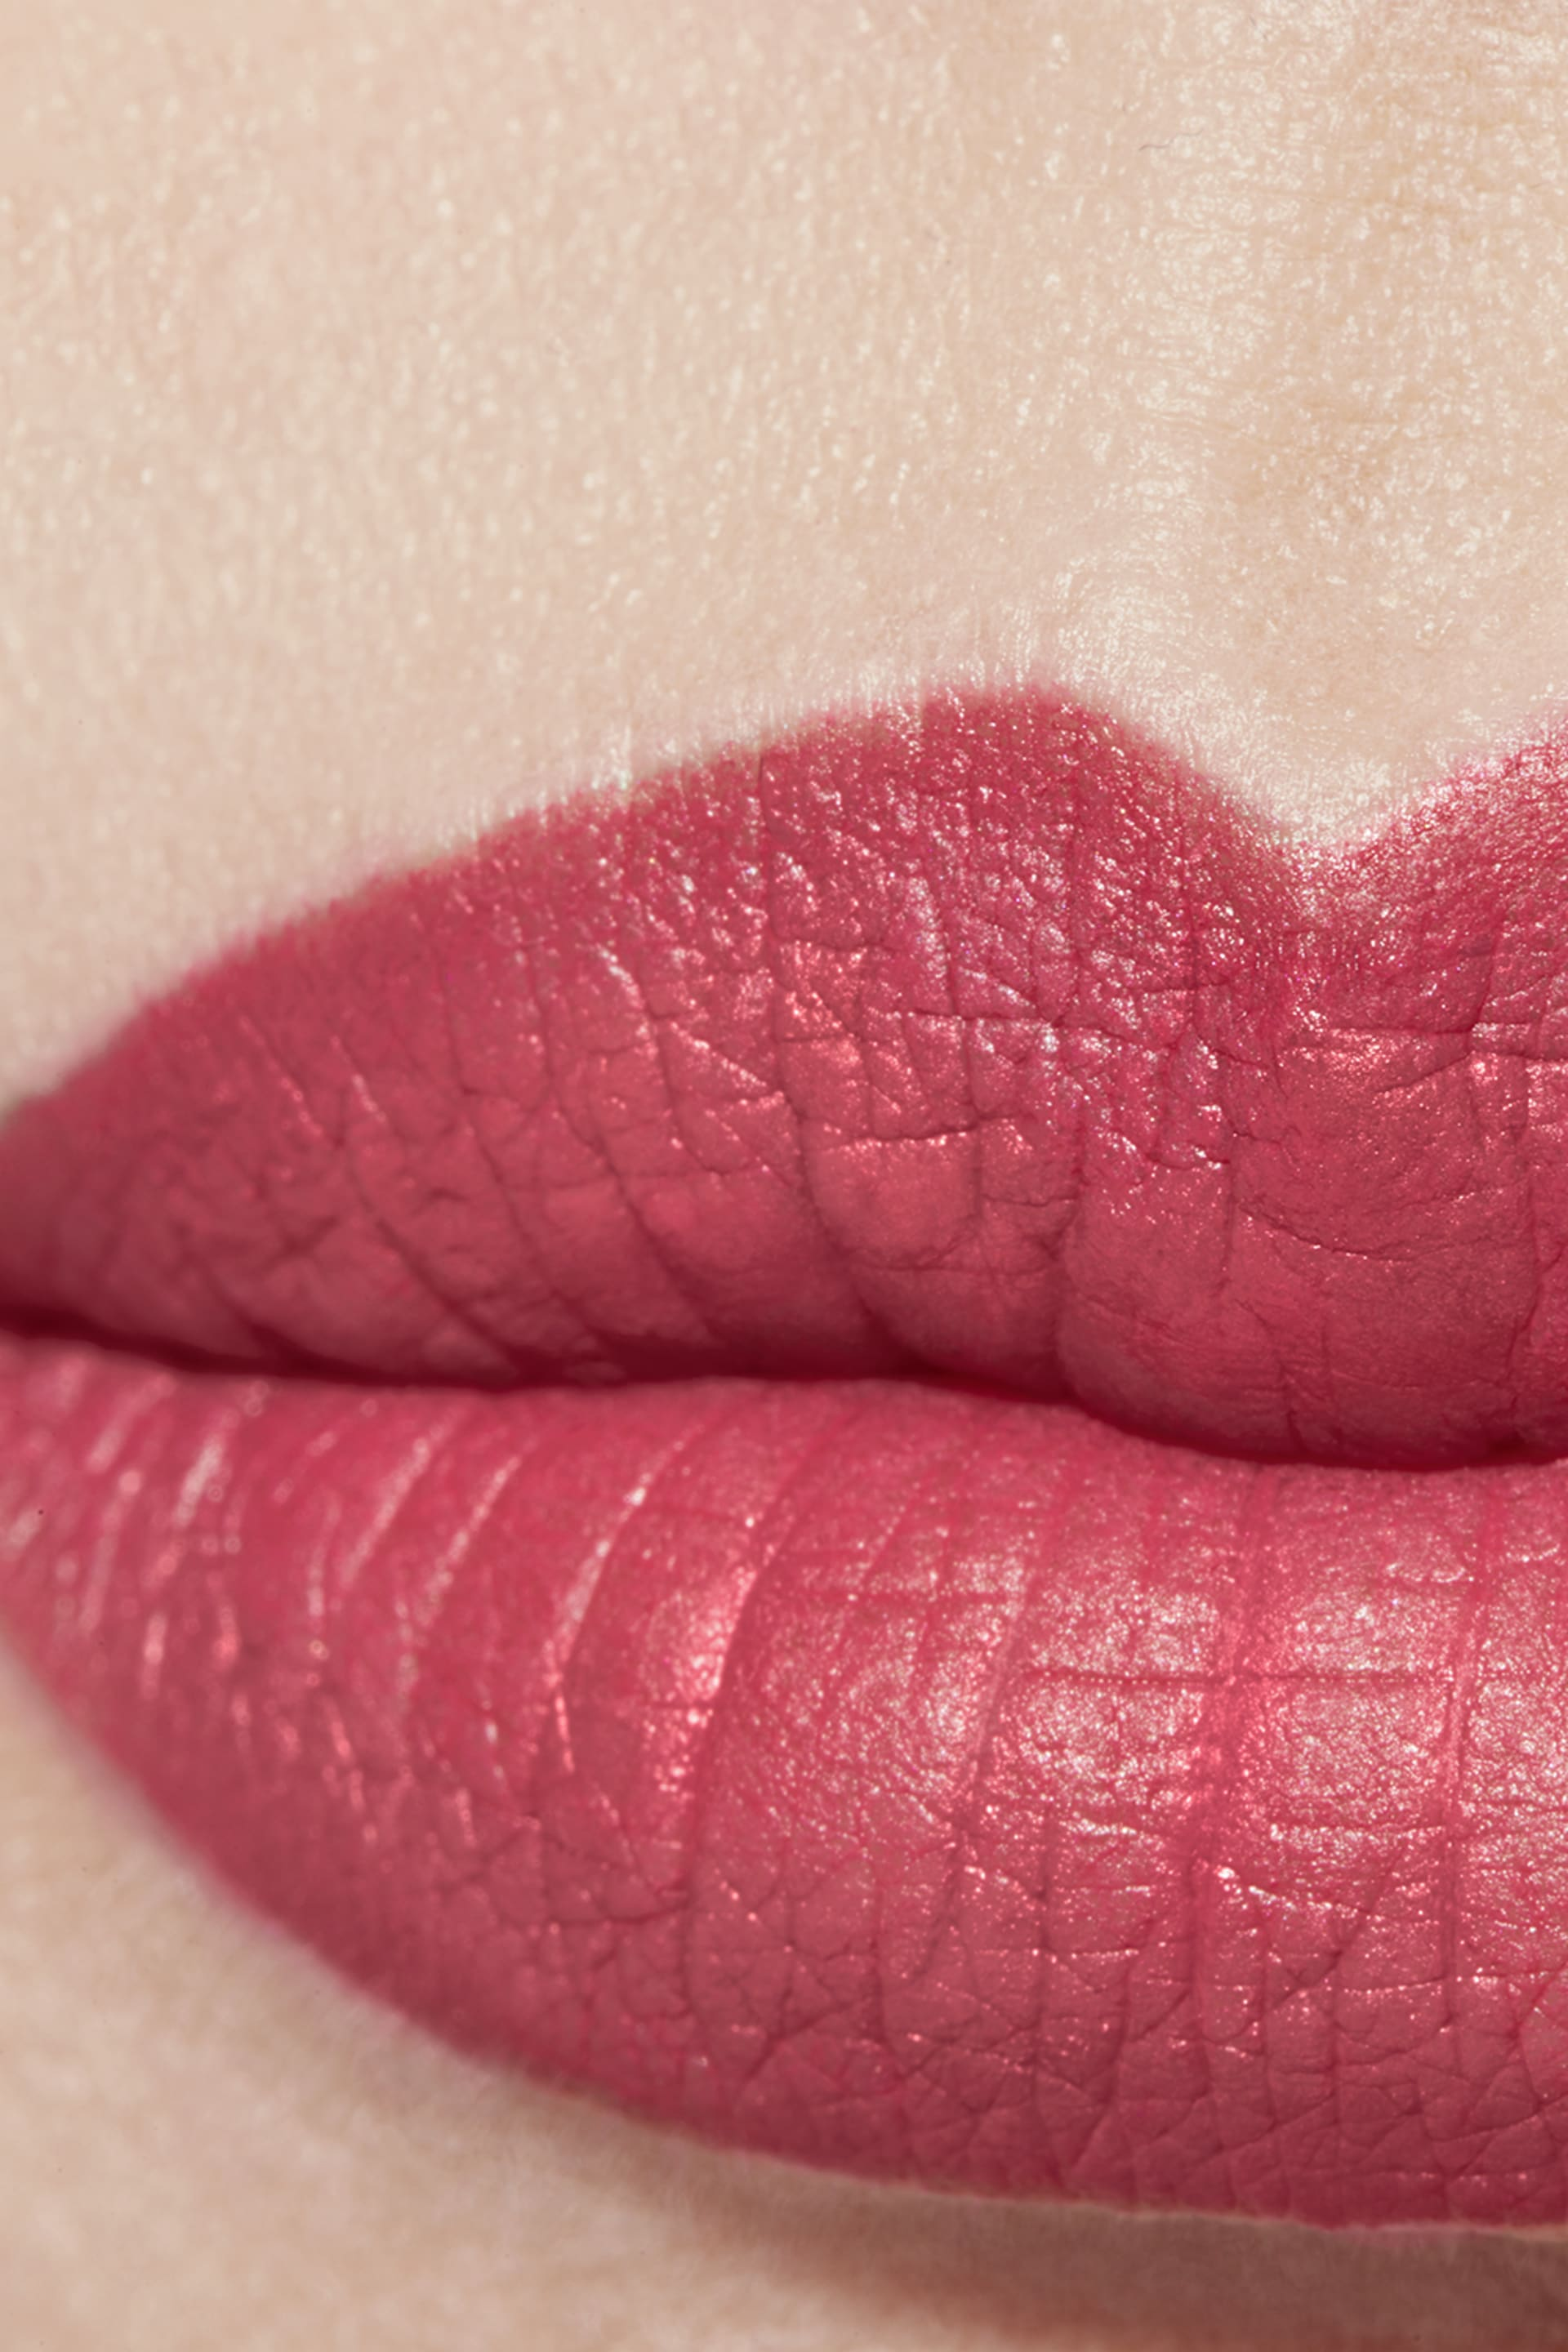 rouge allure velvet chanel